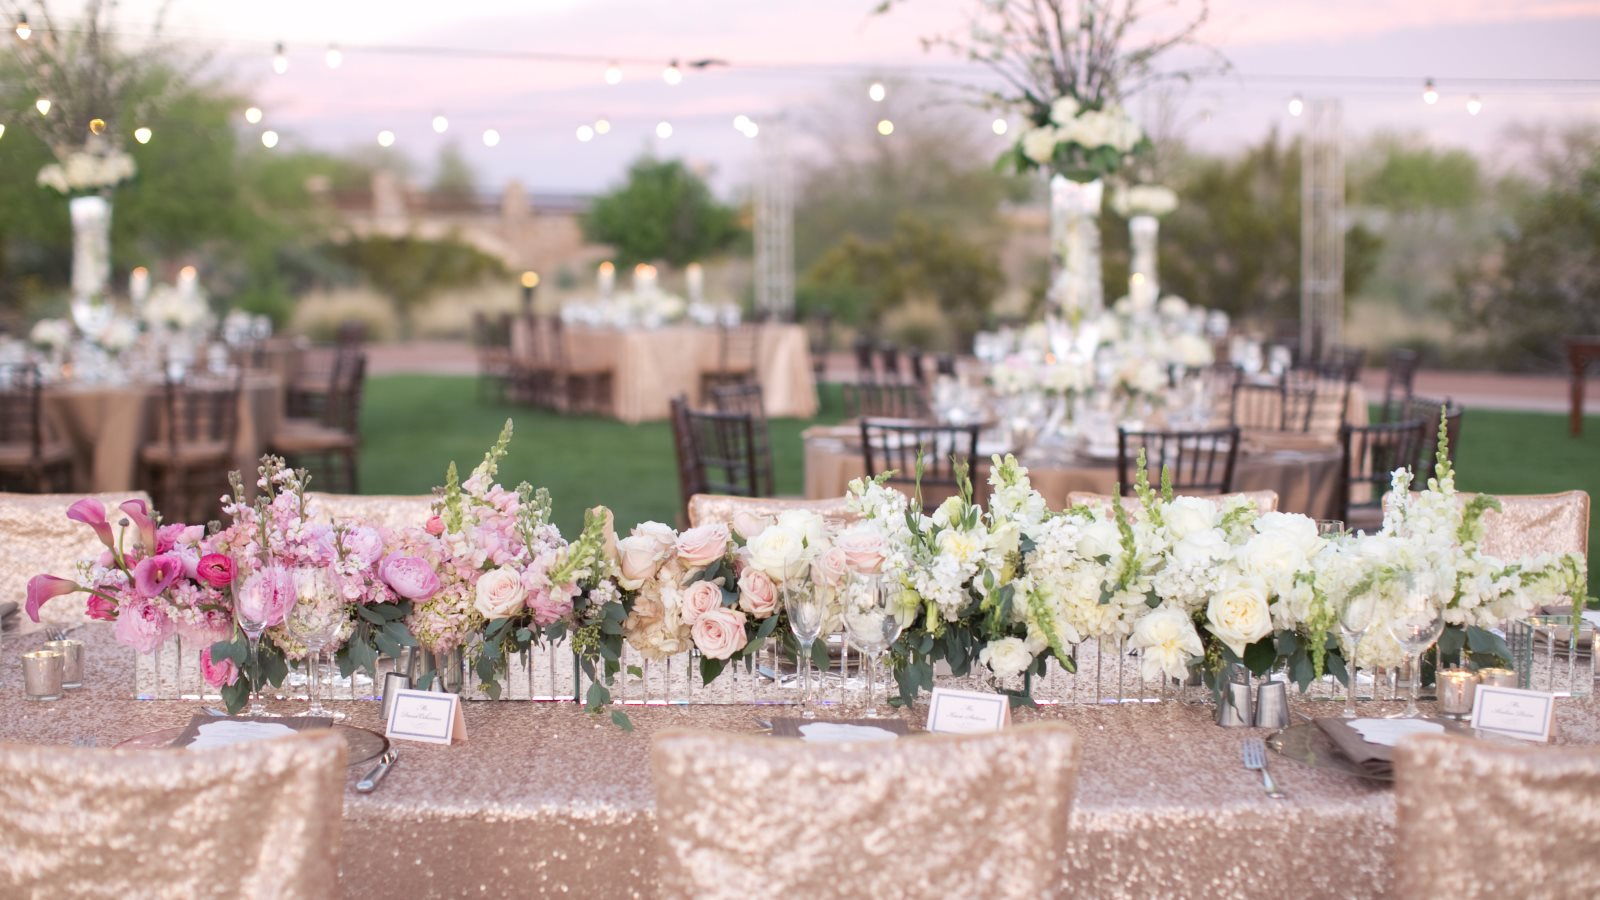 Phoenix Resort Wedding Venue - Outdoor Reception